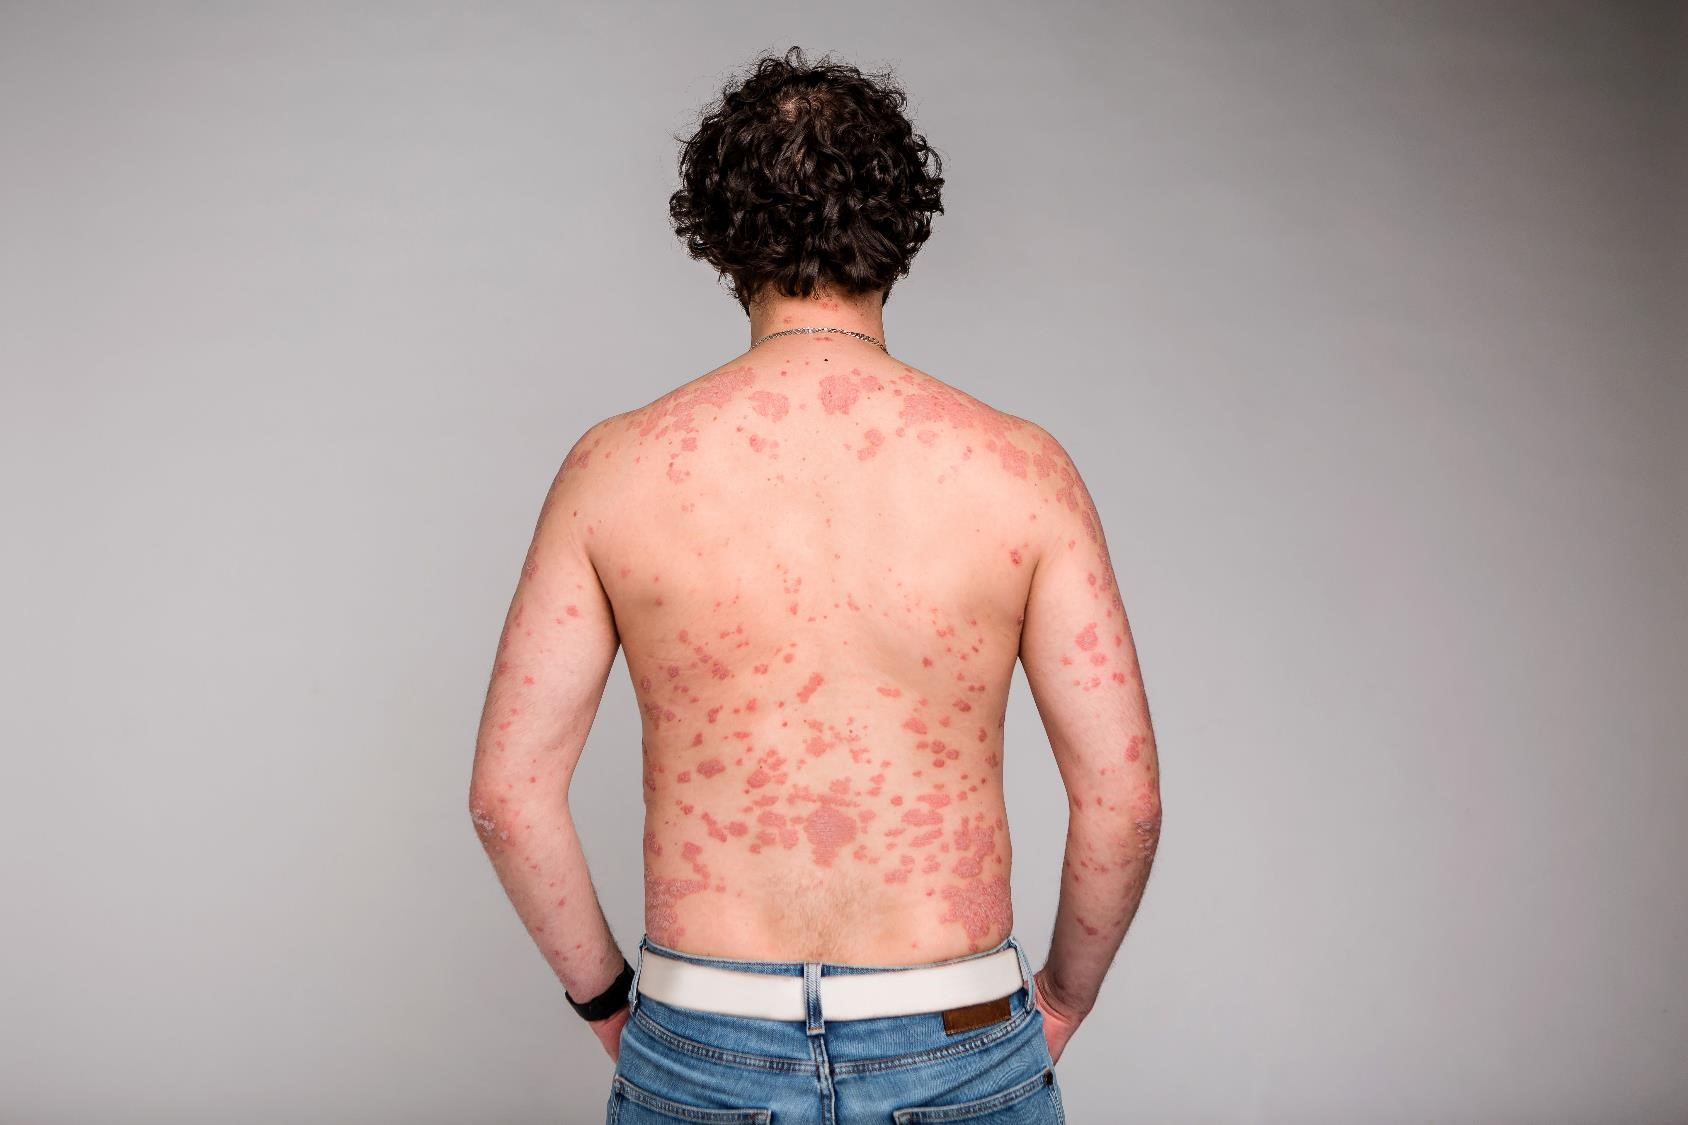 Linking psoriasis with mental health